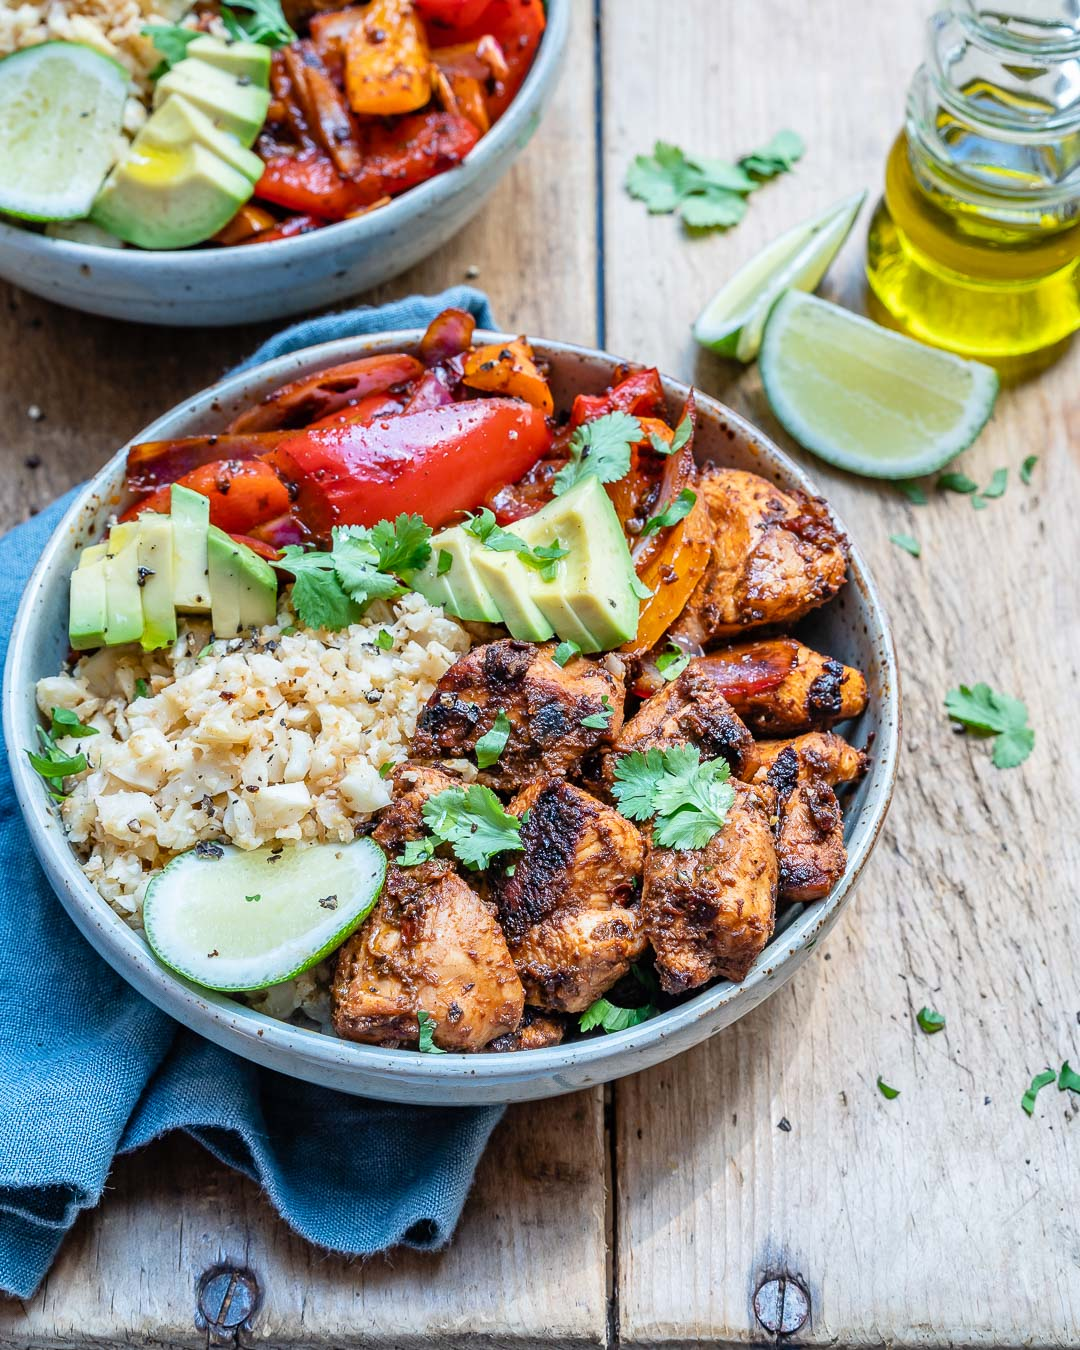 Chipotle Chicken Bowl With Cauliflower Rice (Paleo/Whole30 Recipe)-12